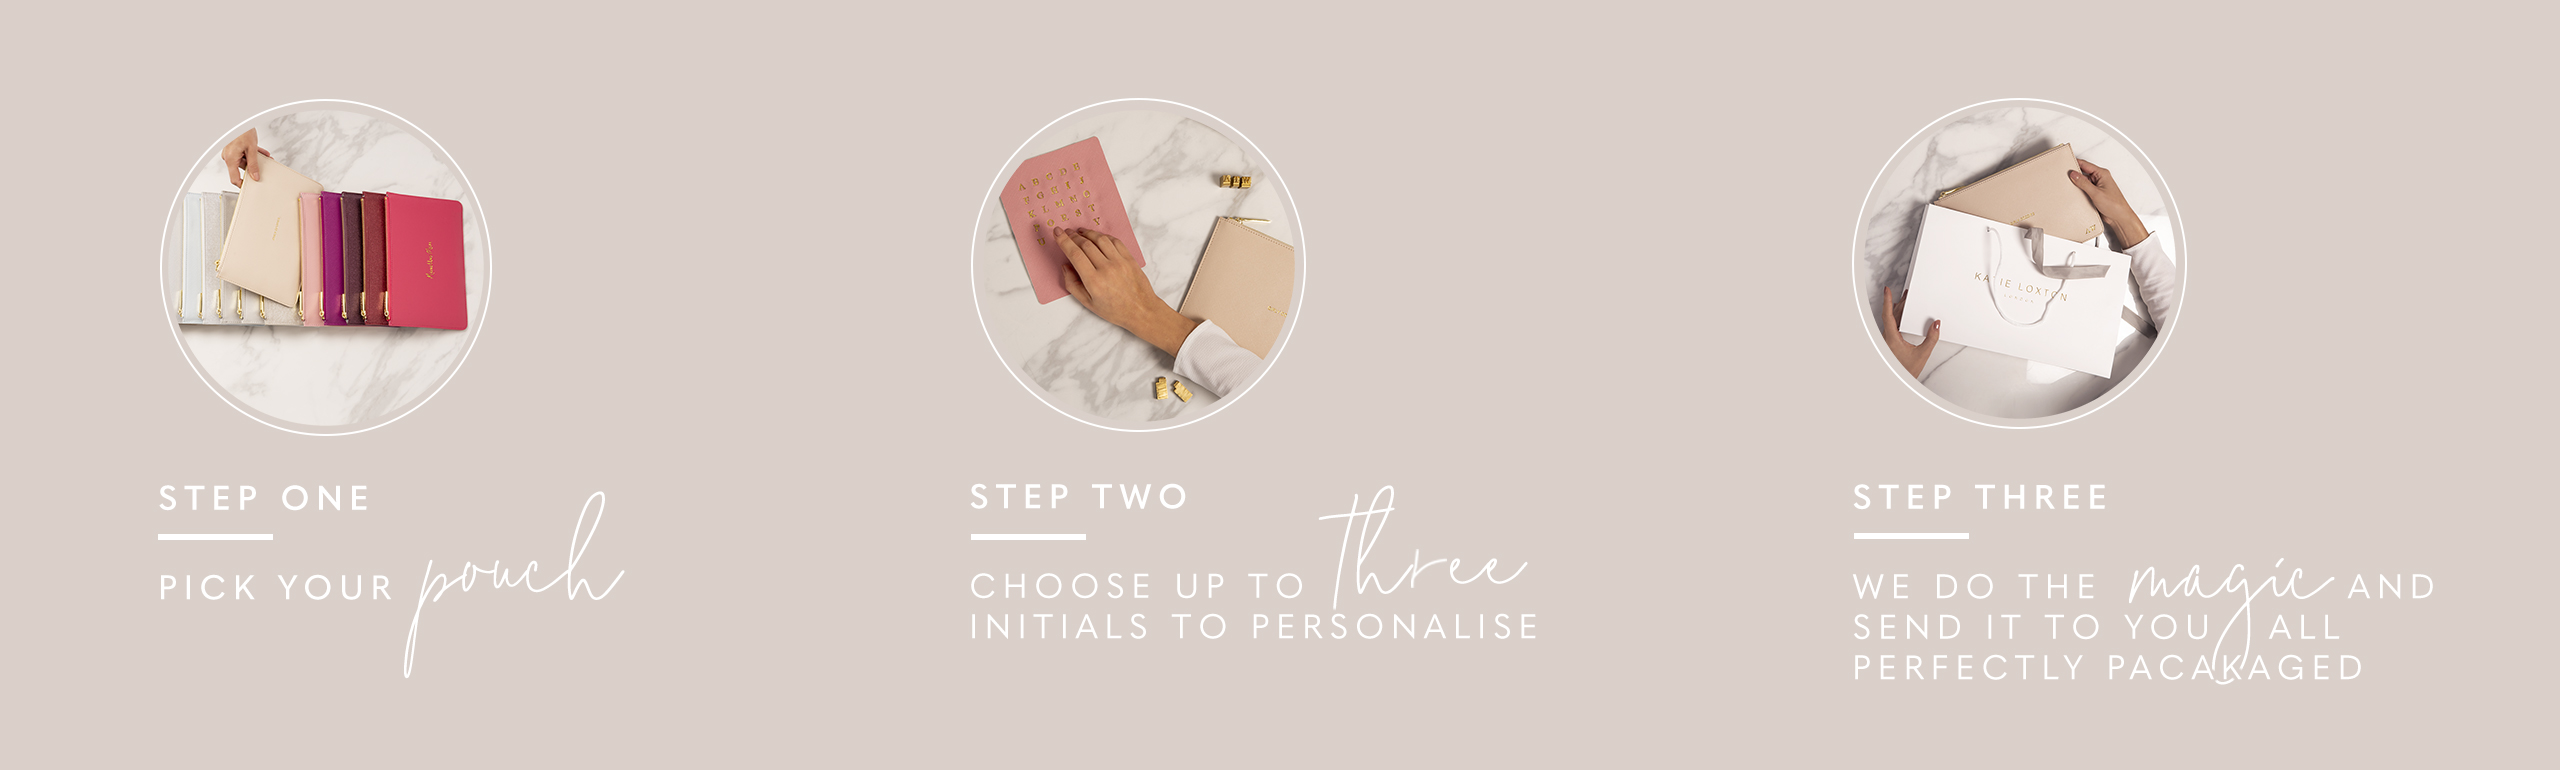 Personalise me - instructions Step one: pick your pouch Step Two: Choose up to three initials to personalise Step Three: Treat yourself or give the perfect gift